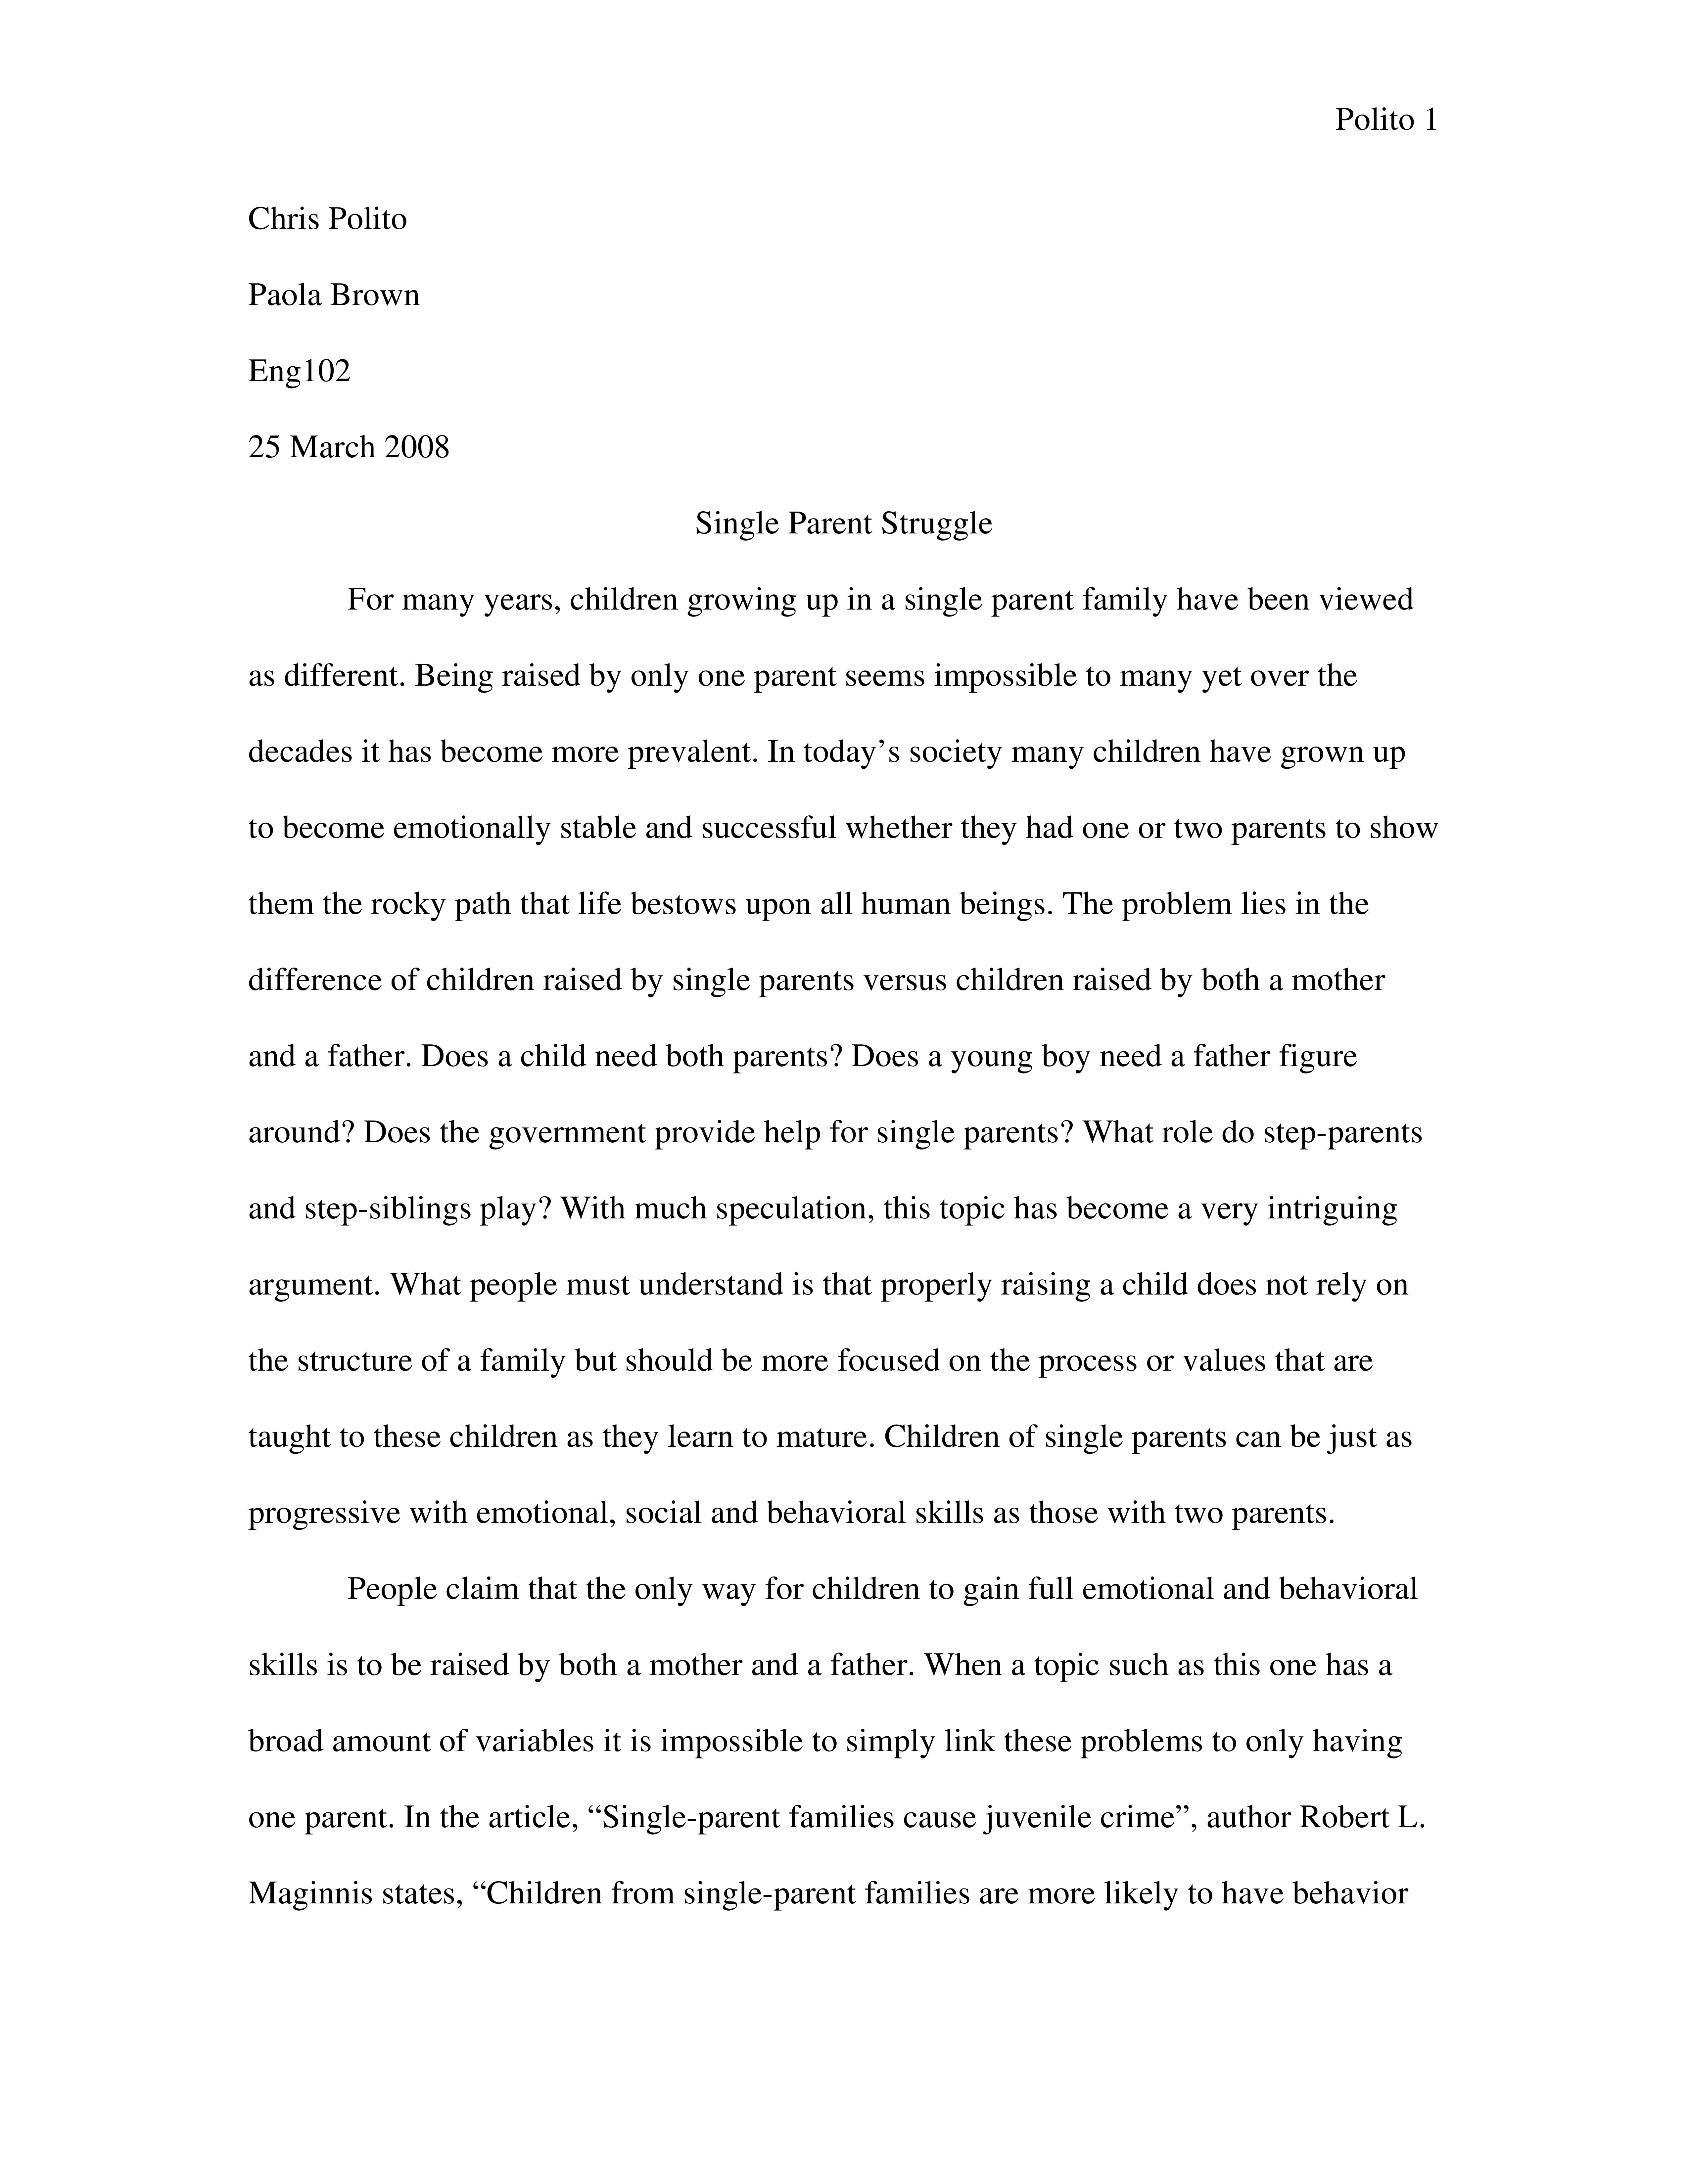 008 Essay Example Expository Samples Sample 2 Impressive Theme Examples High School For 7th Grade Full